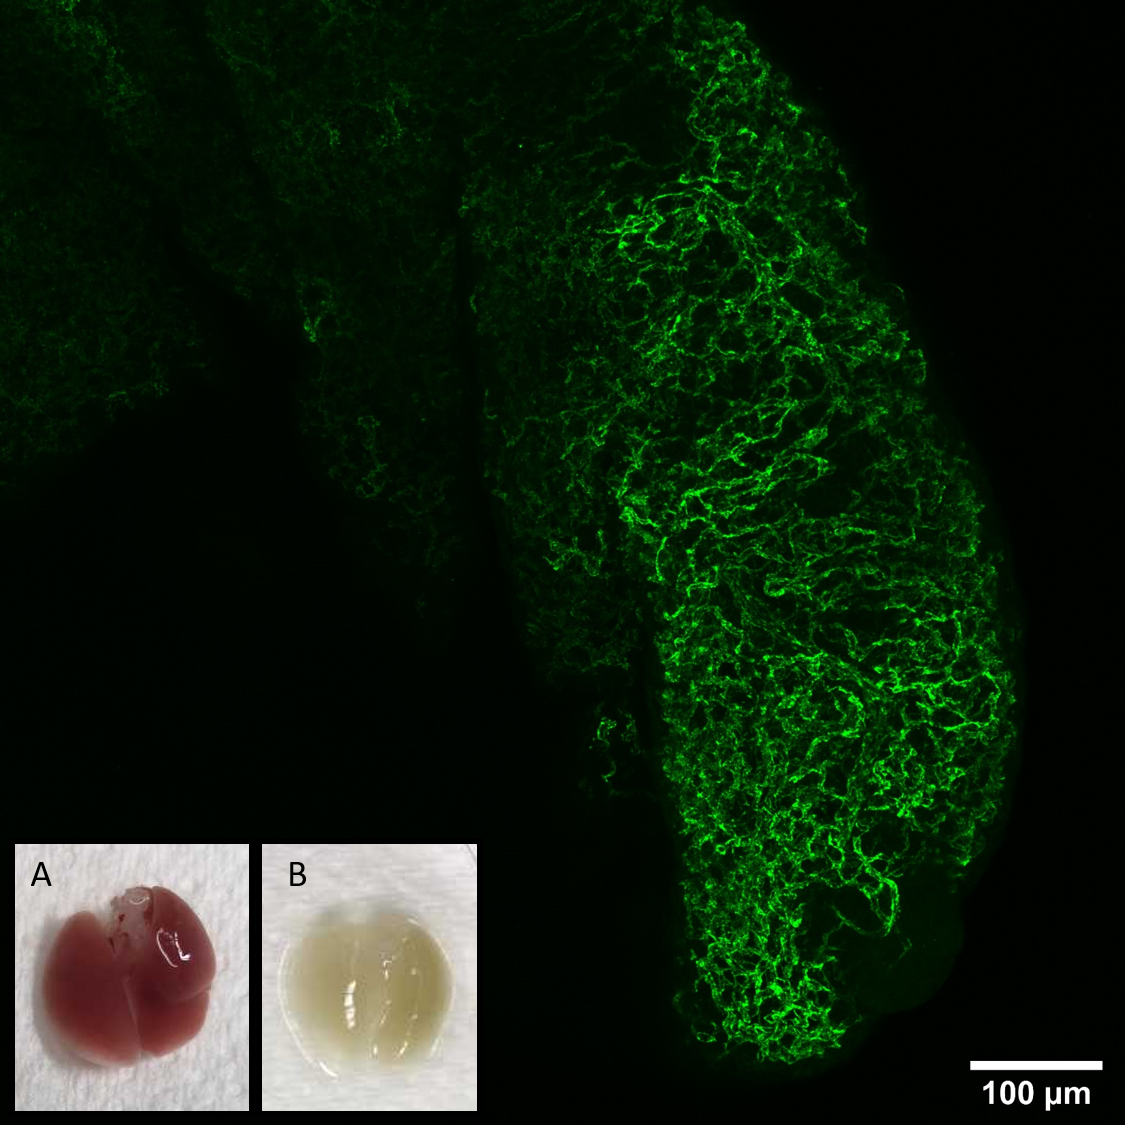 Z-projection of blood vessels in mouse tissue labelled with anti-CD31 antibody (green). The lung tissue before (A) and after (B) optical clearing.